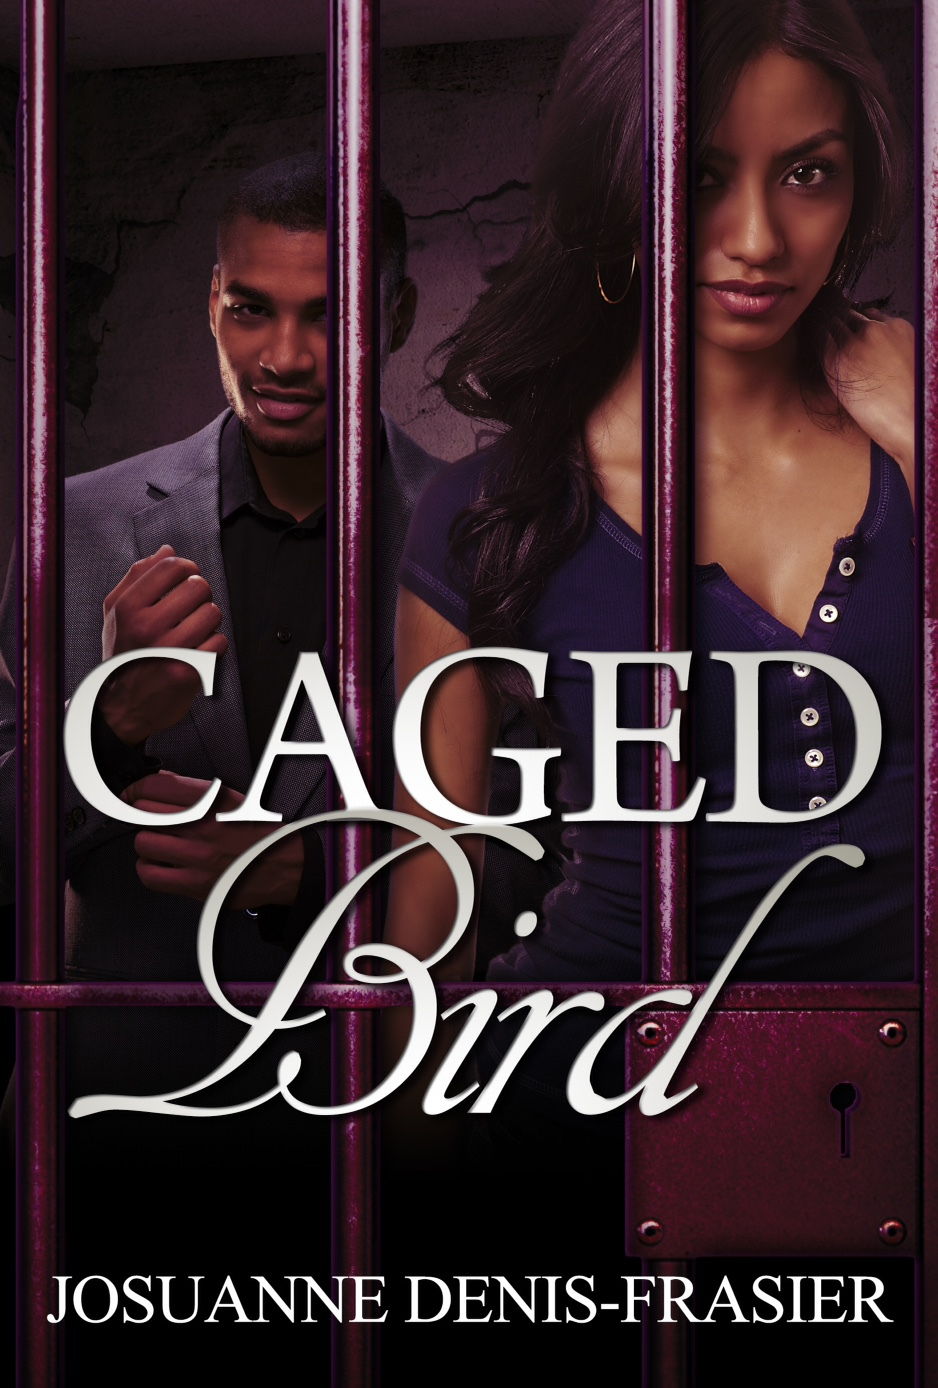 Caged Bird's Availability